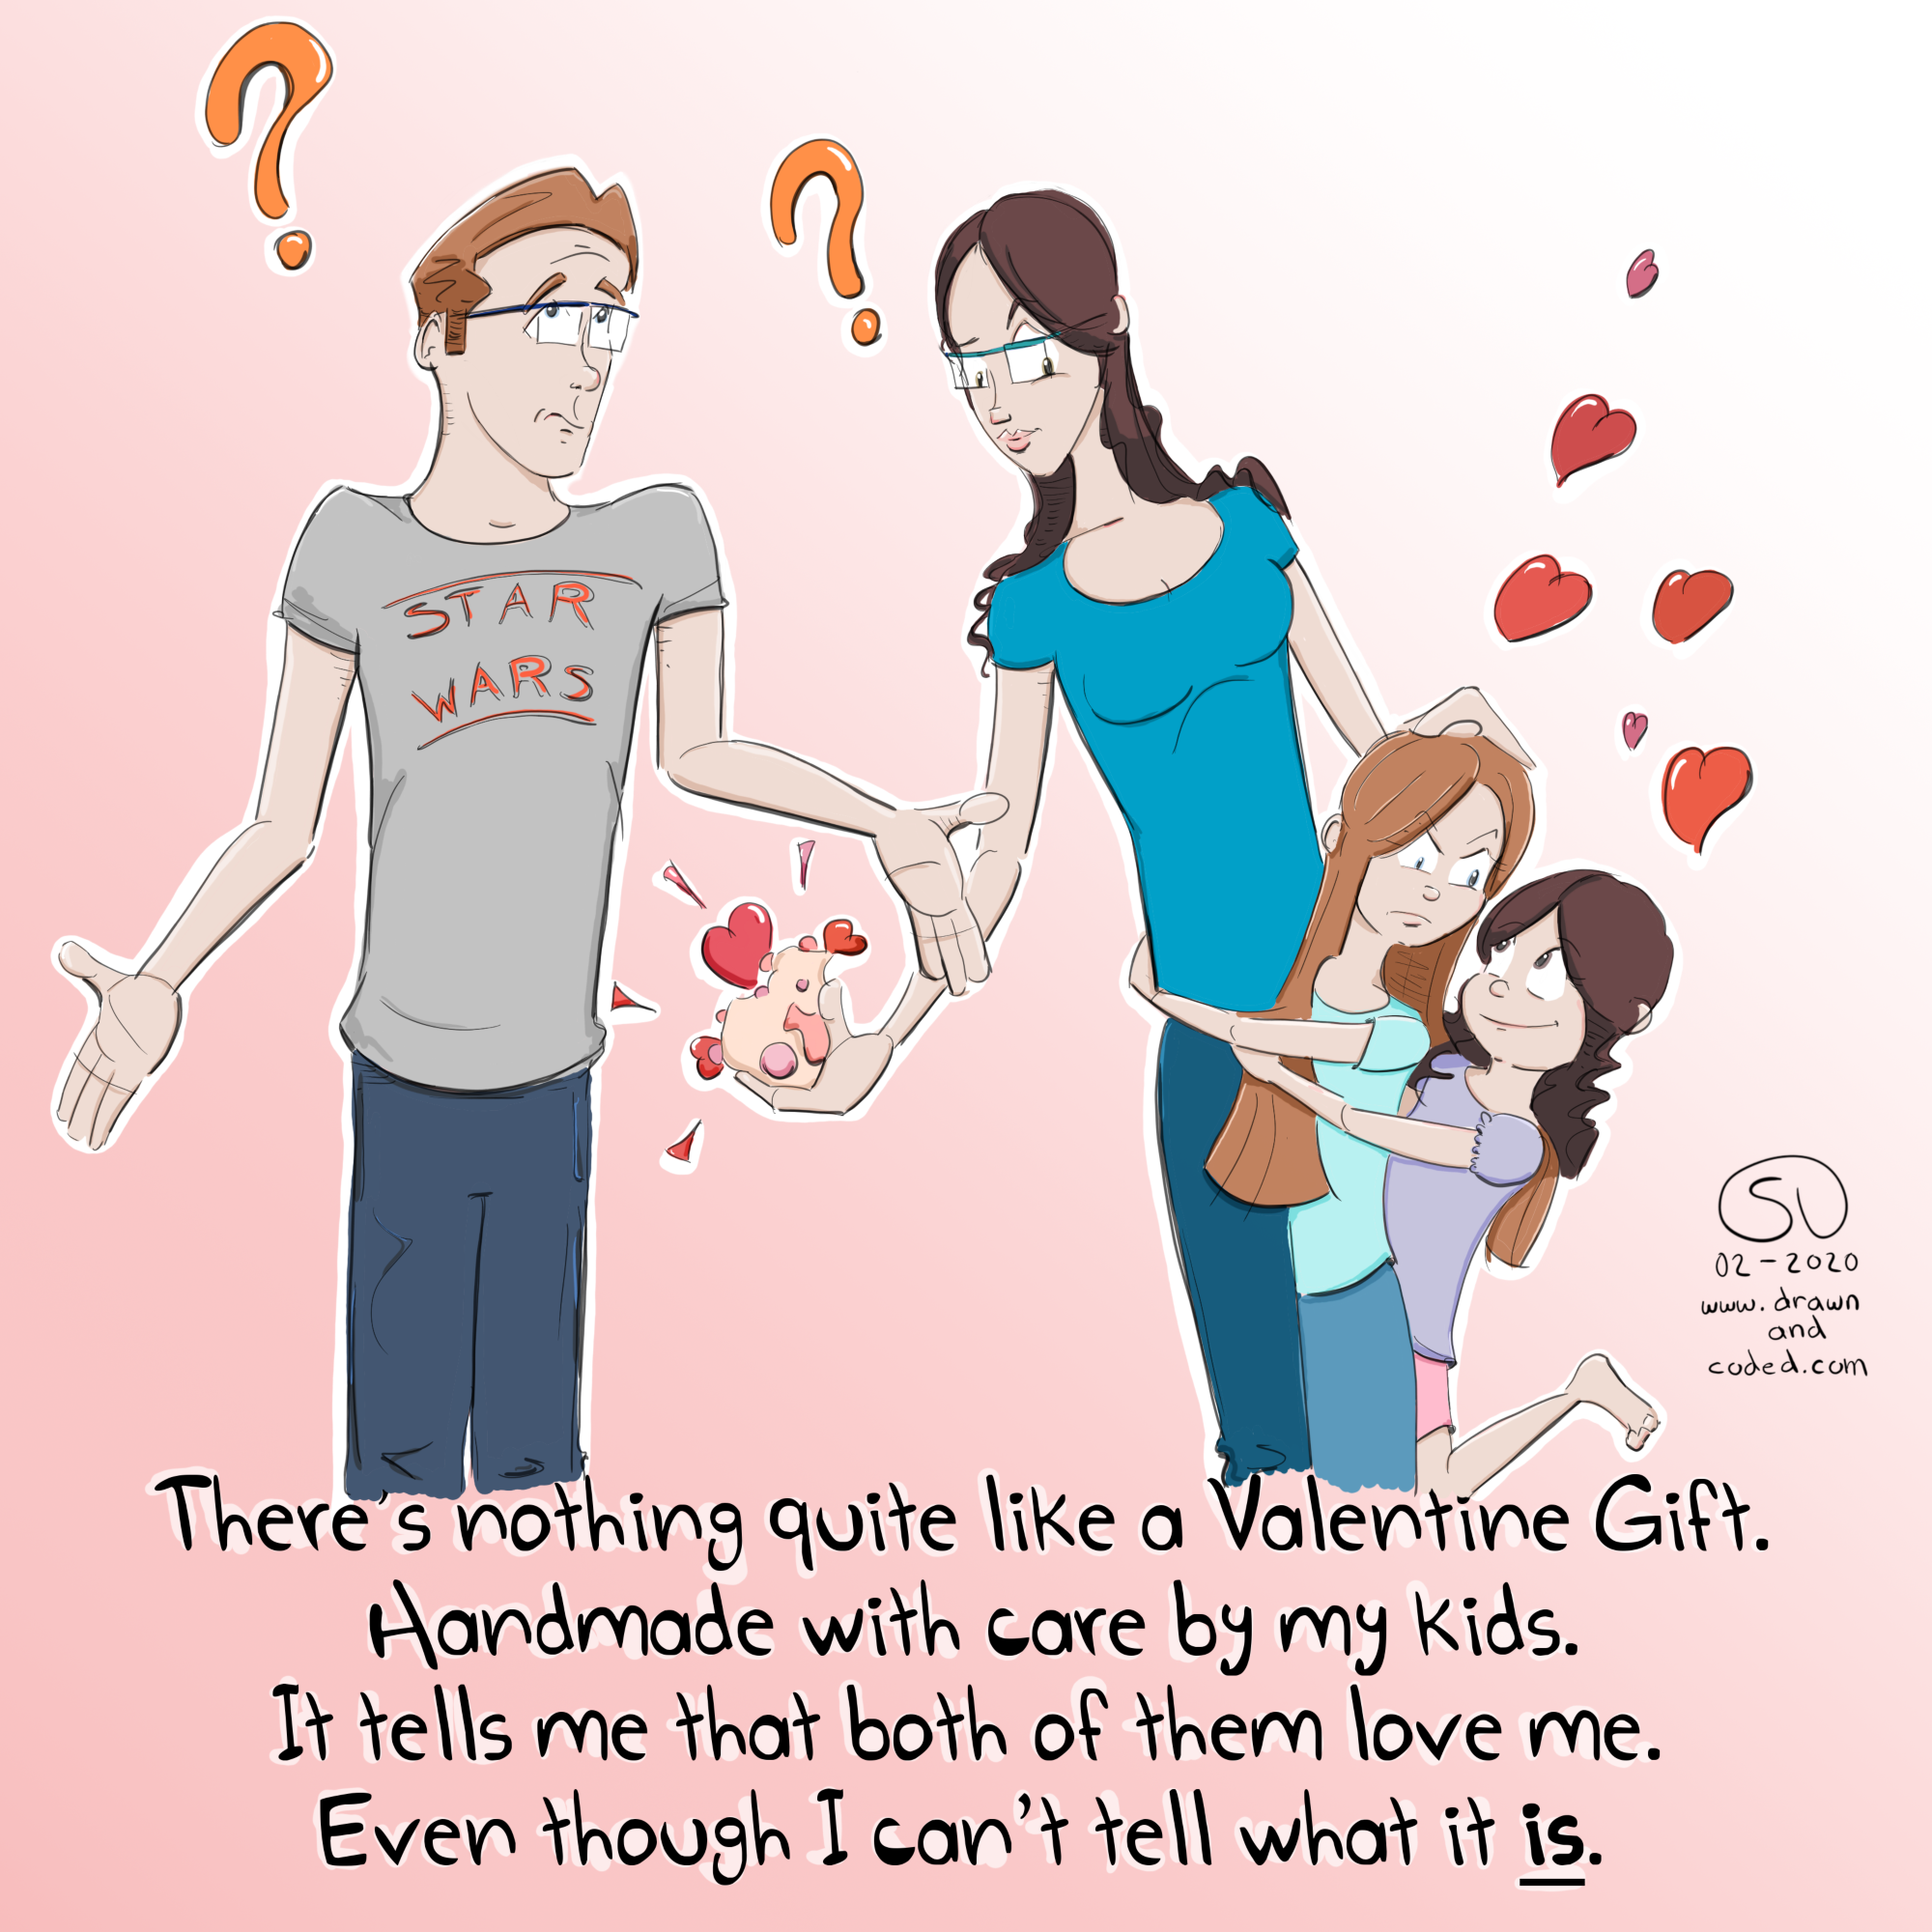 happy valentines day handmade handcrafted parenting family parenting fail comic